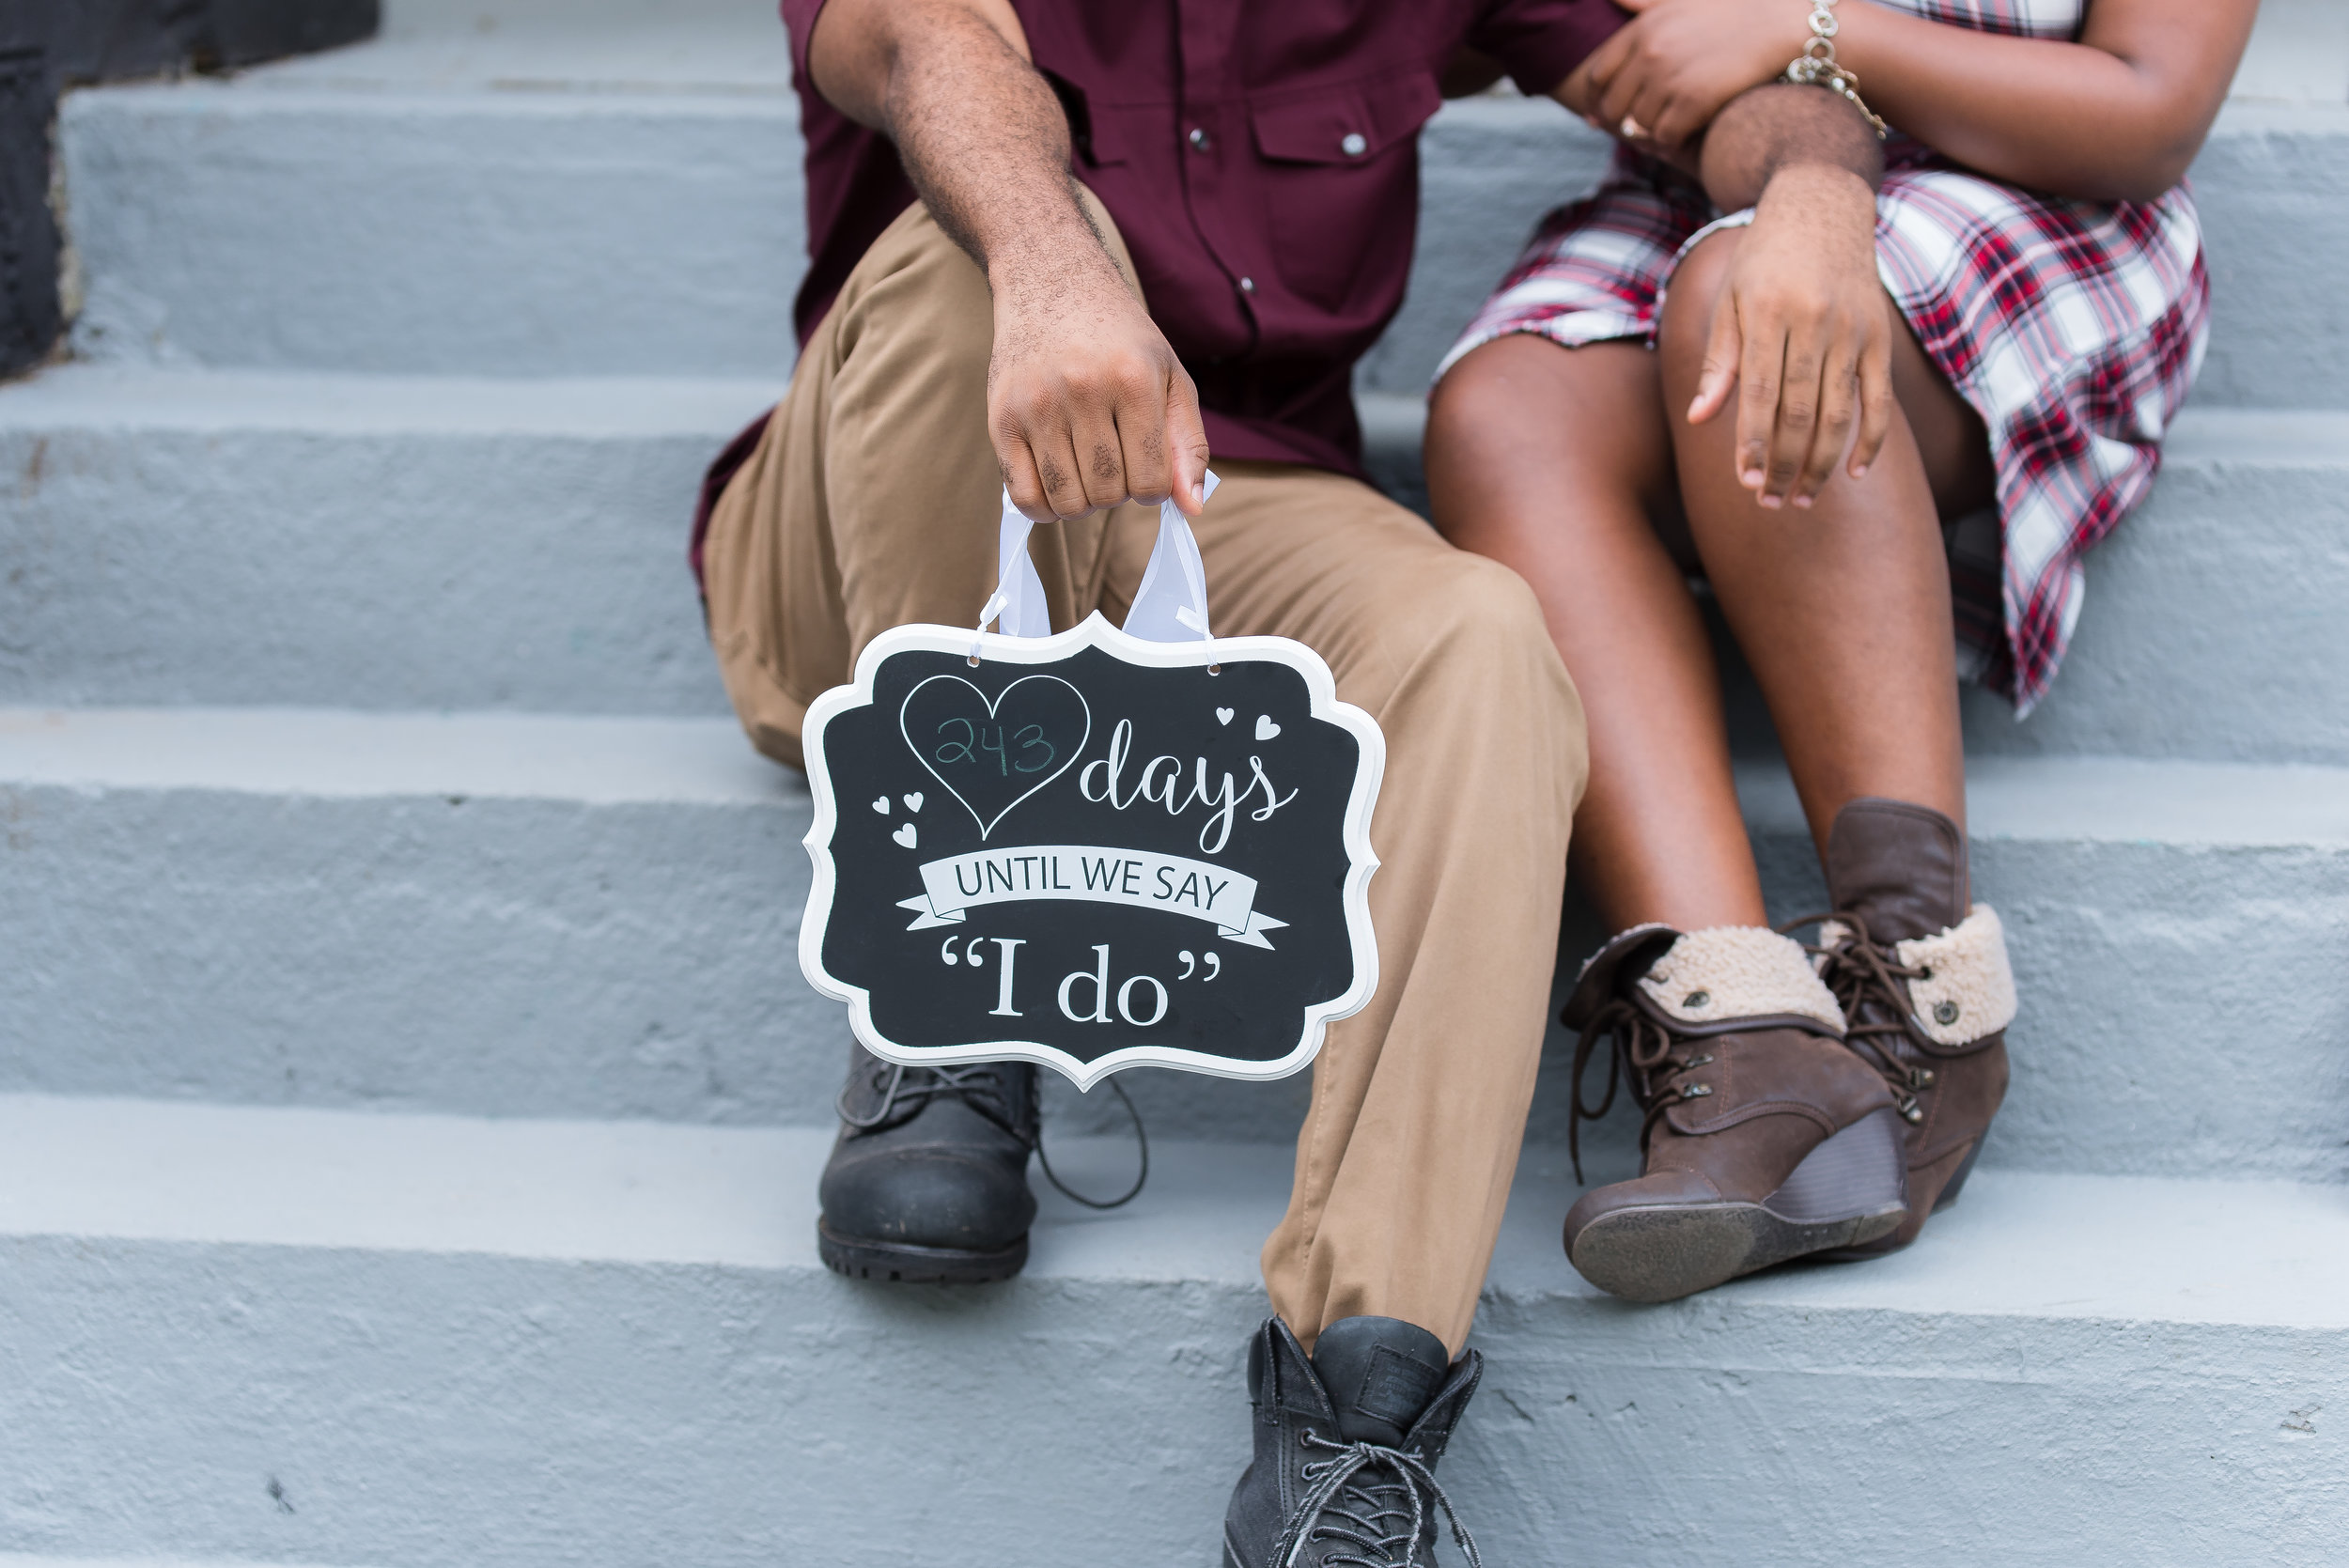 Abigail + James - Endless Memories - McGarity House Engagement Photos (22 of 55).jpg